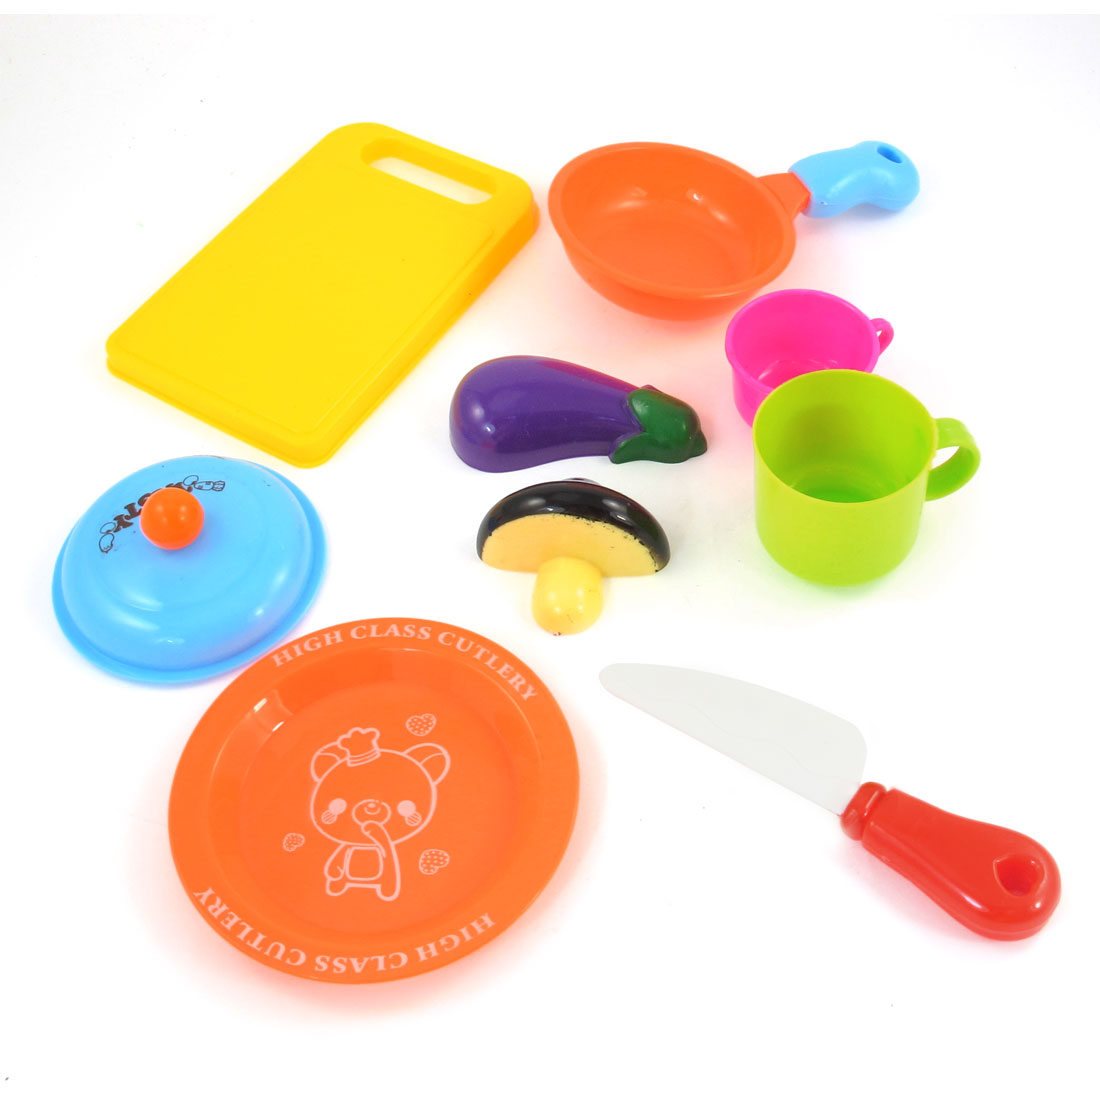 Children Orange Yellow Purple Plastic Plate Chopping Board Eggplant Model Toy